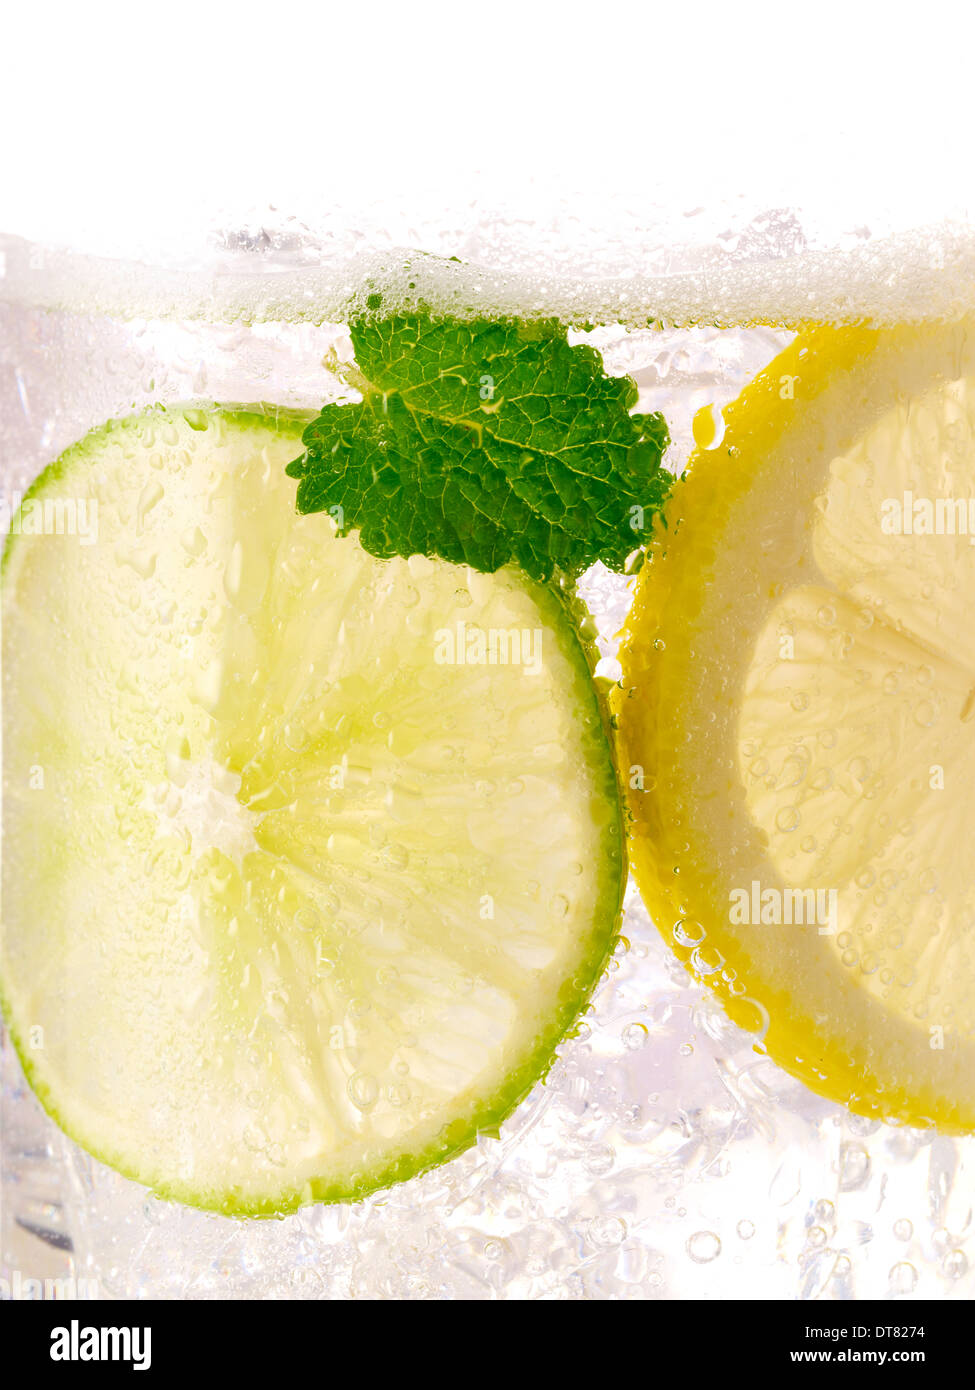 A close up detail of a lemon lime soda with a mint leaf with ice in a clear glass Stock Photo